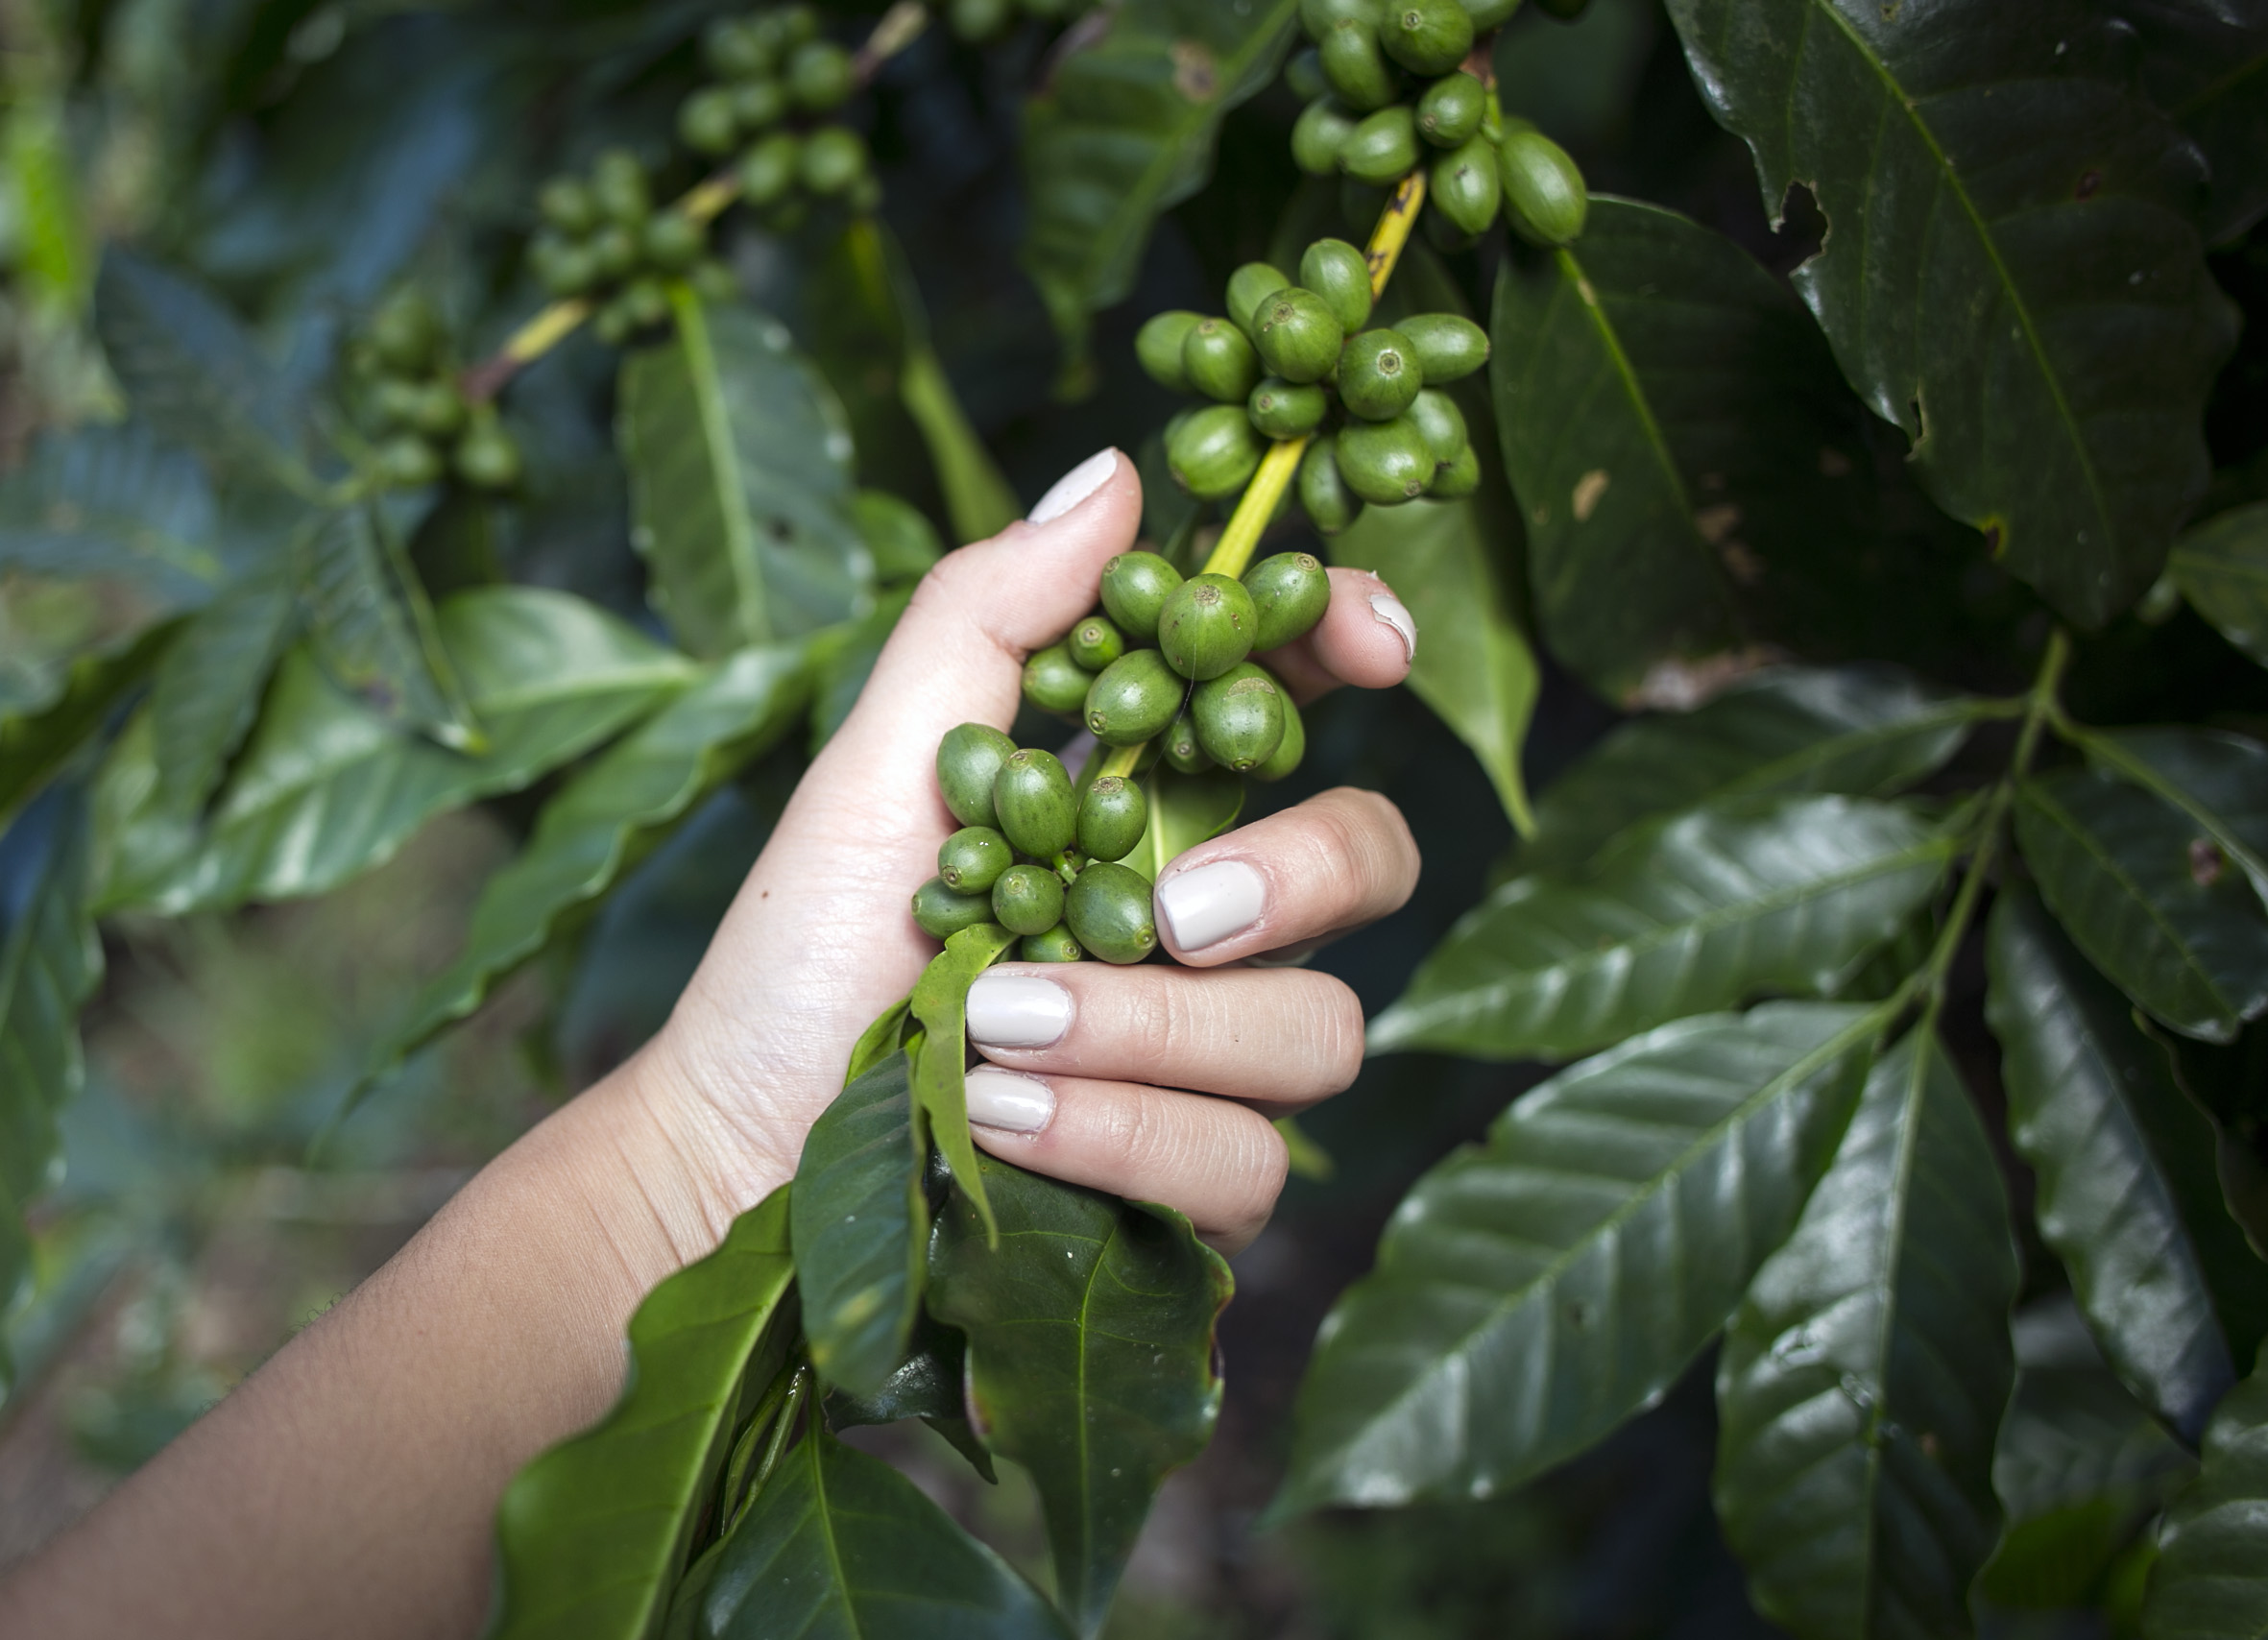 Coffee cherries appear green when unripe and immature. When la roya strikes a plant, the leaves will turn a orange, brown, rusty color and signifies no cherries can be picked from that plant.